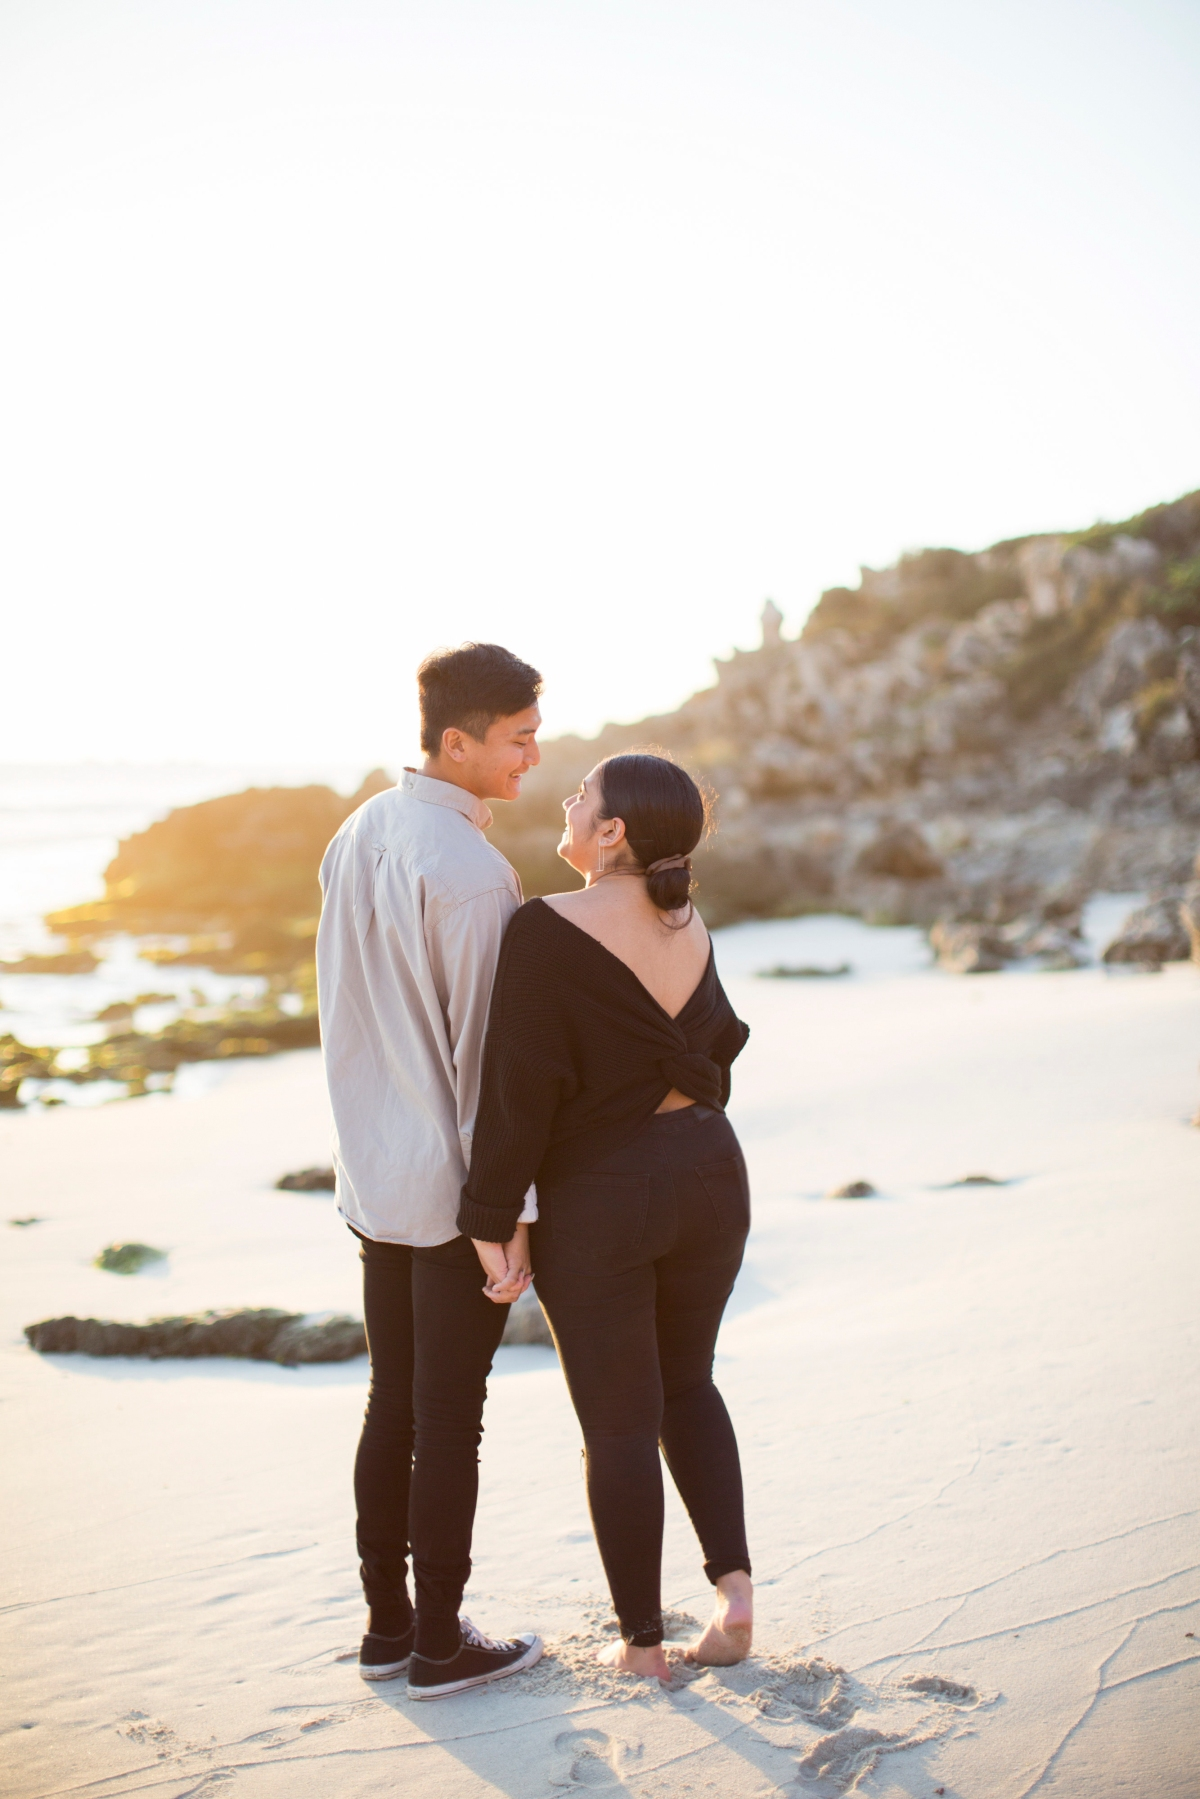 View More: http://ameliaclairephoto.pass.us/corey-and-laura-proposal